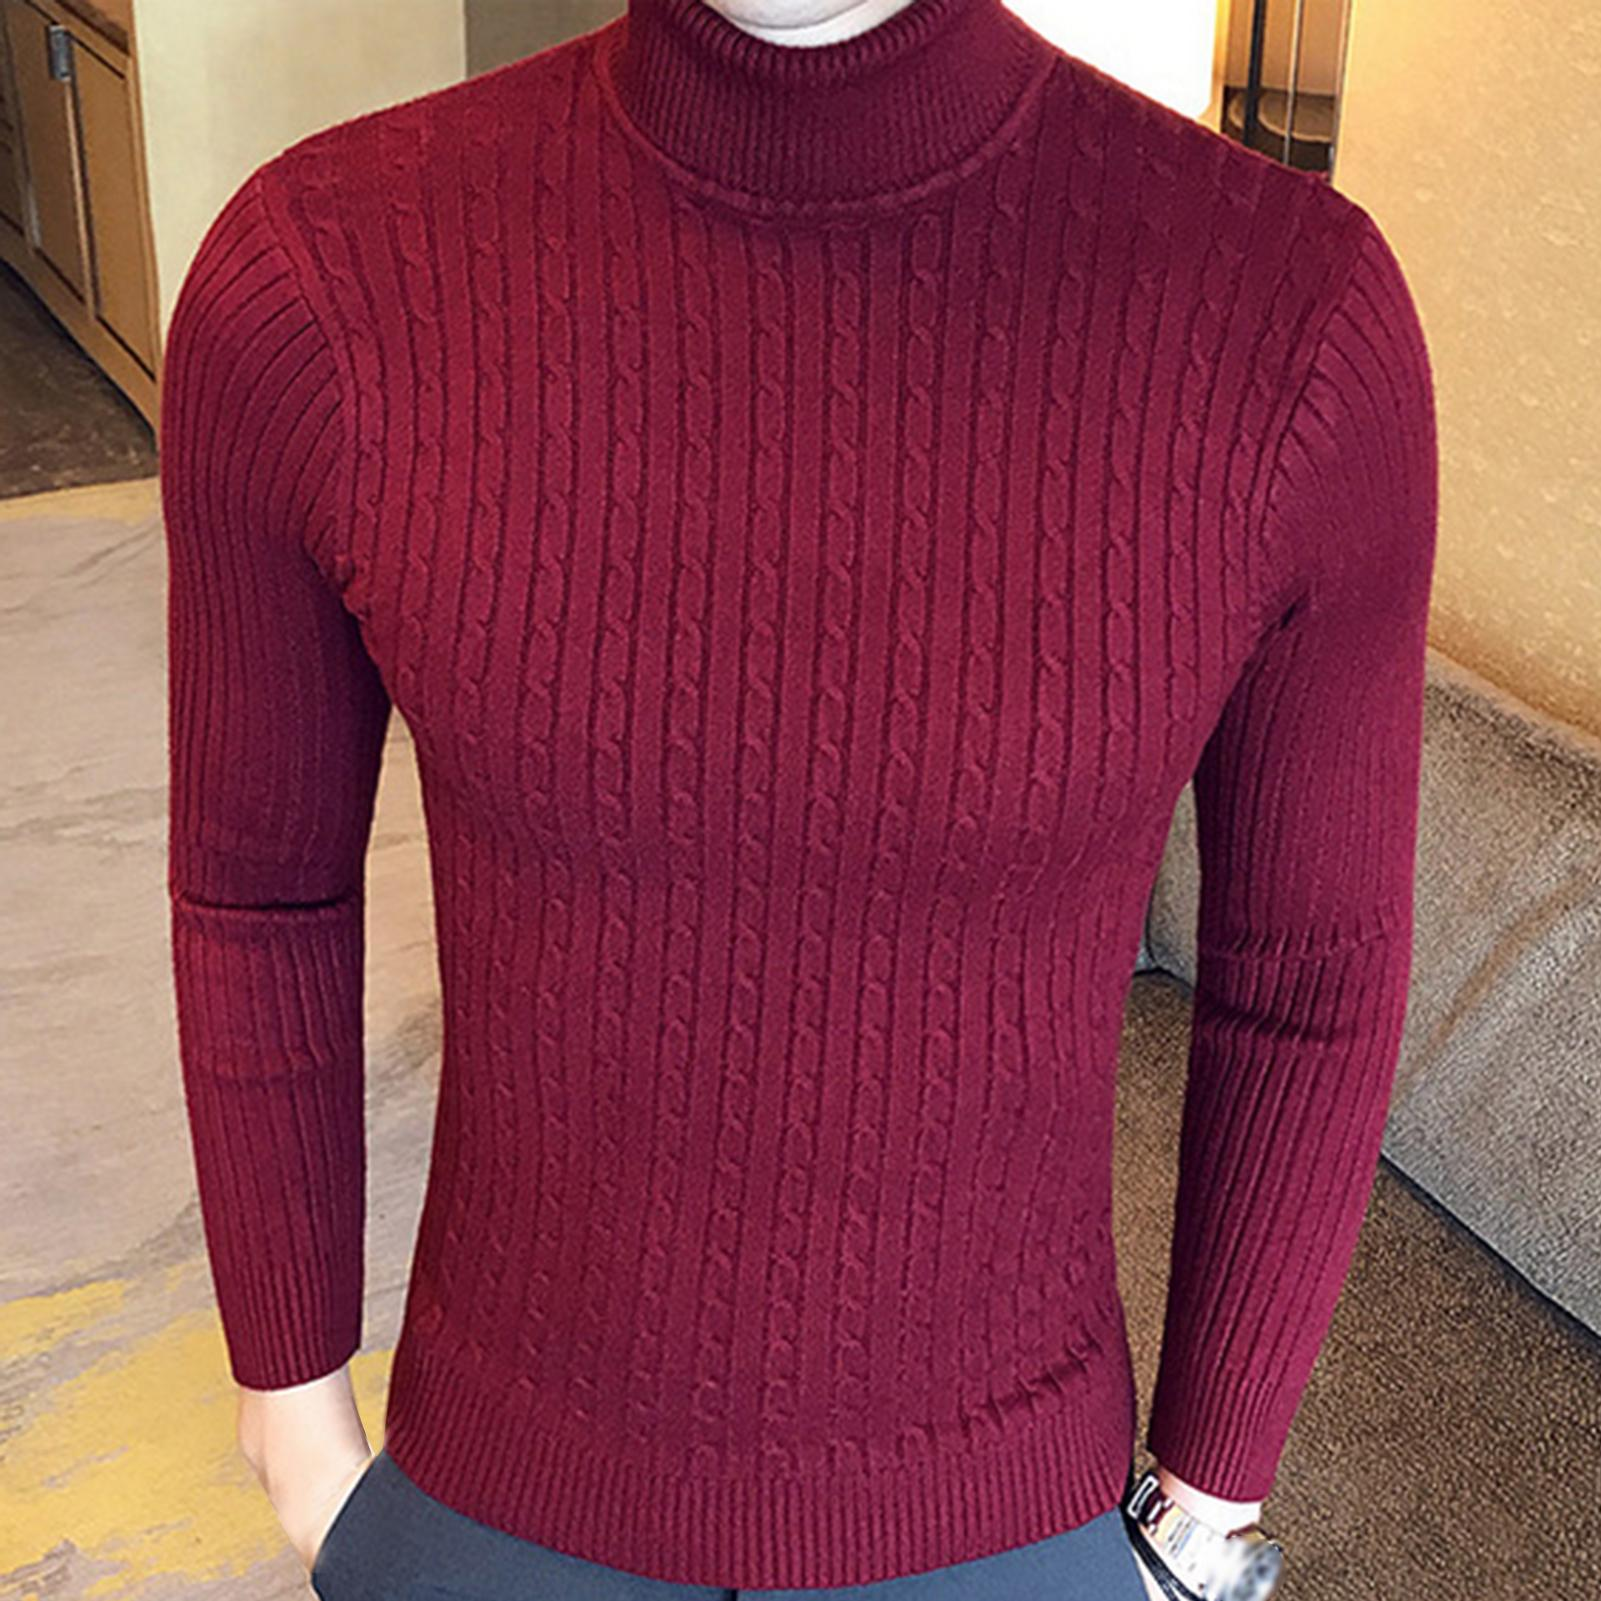 2020 New Autumn Winter Men'S sweater Men's Turtleneck Solid Color Casual Sweater Men's Slim-Fit Knitted Pullovers 1